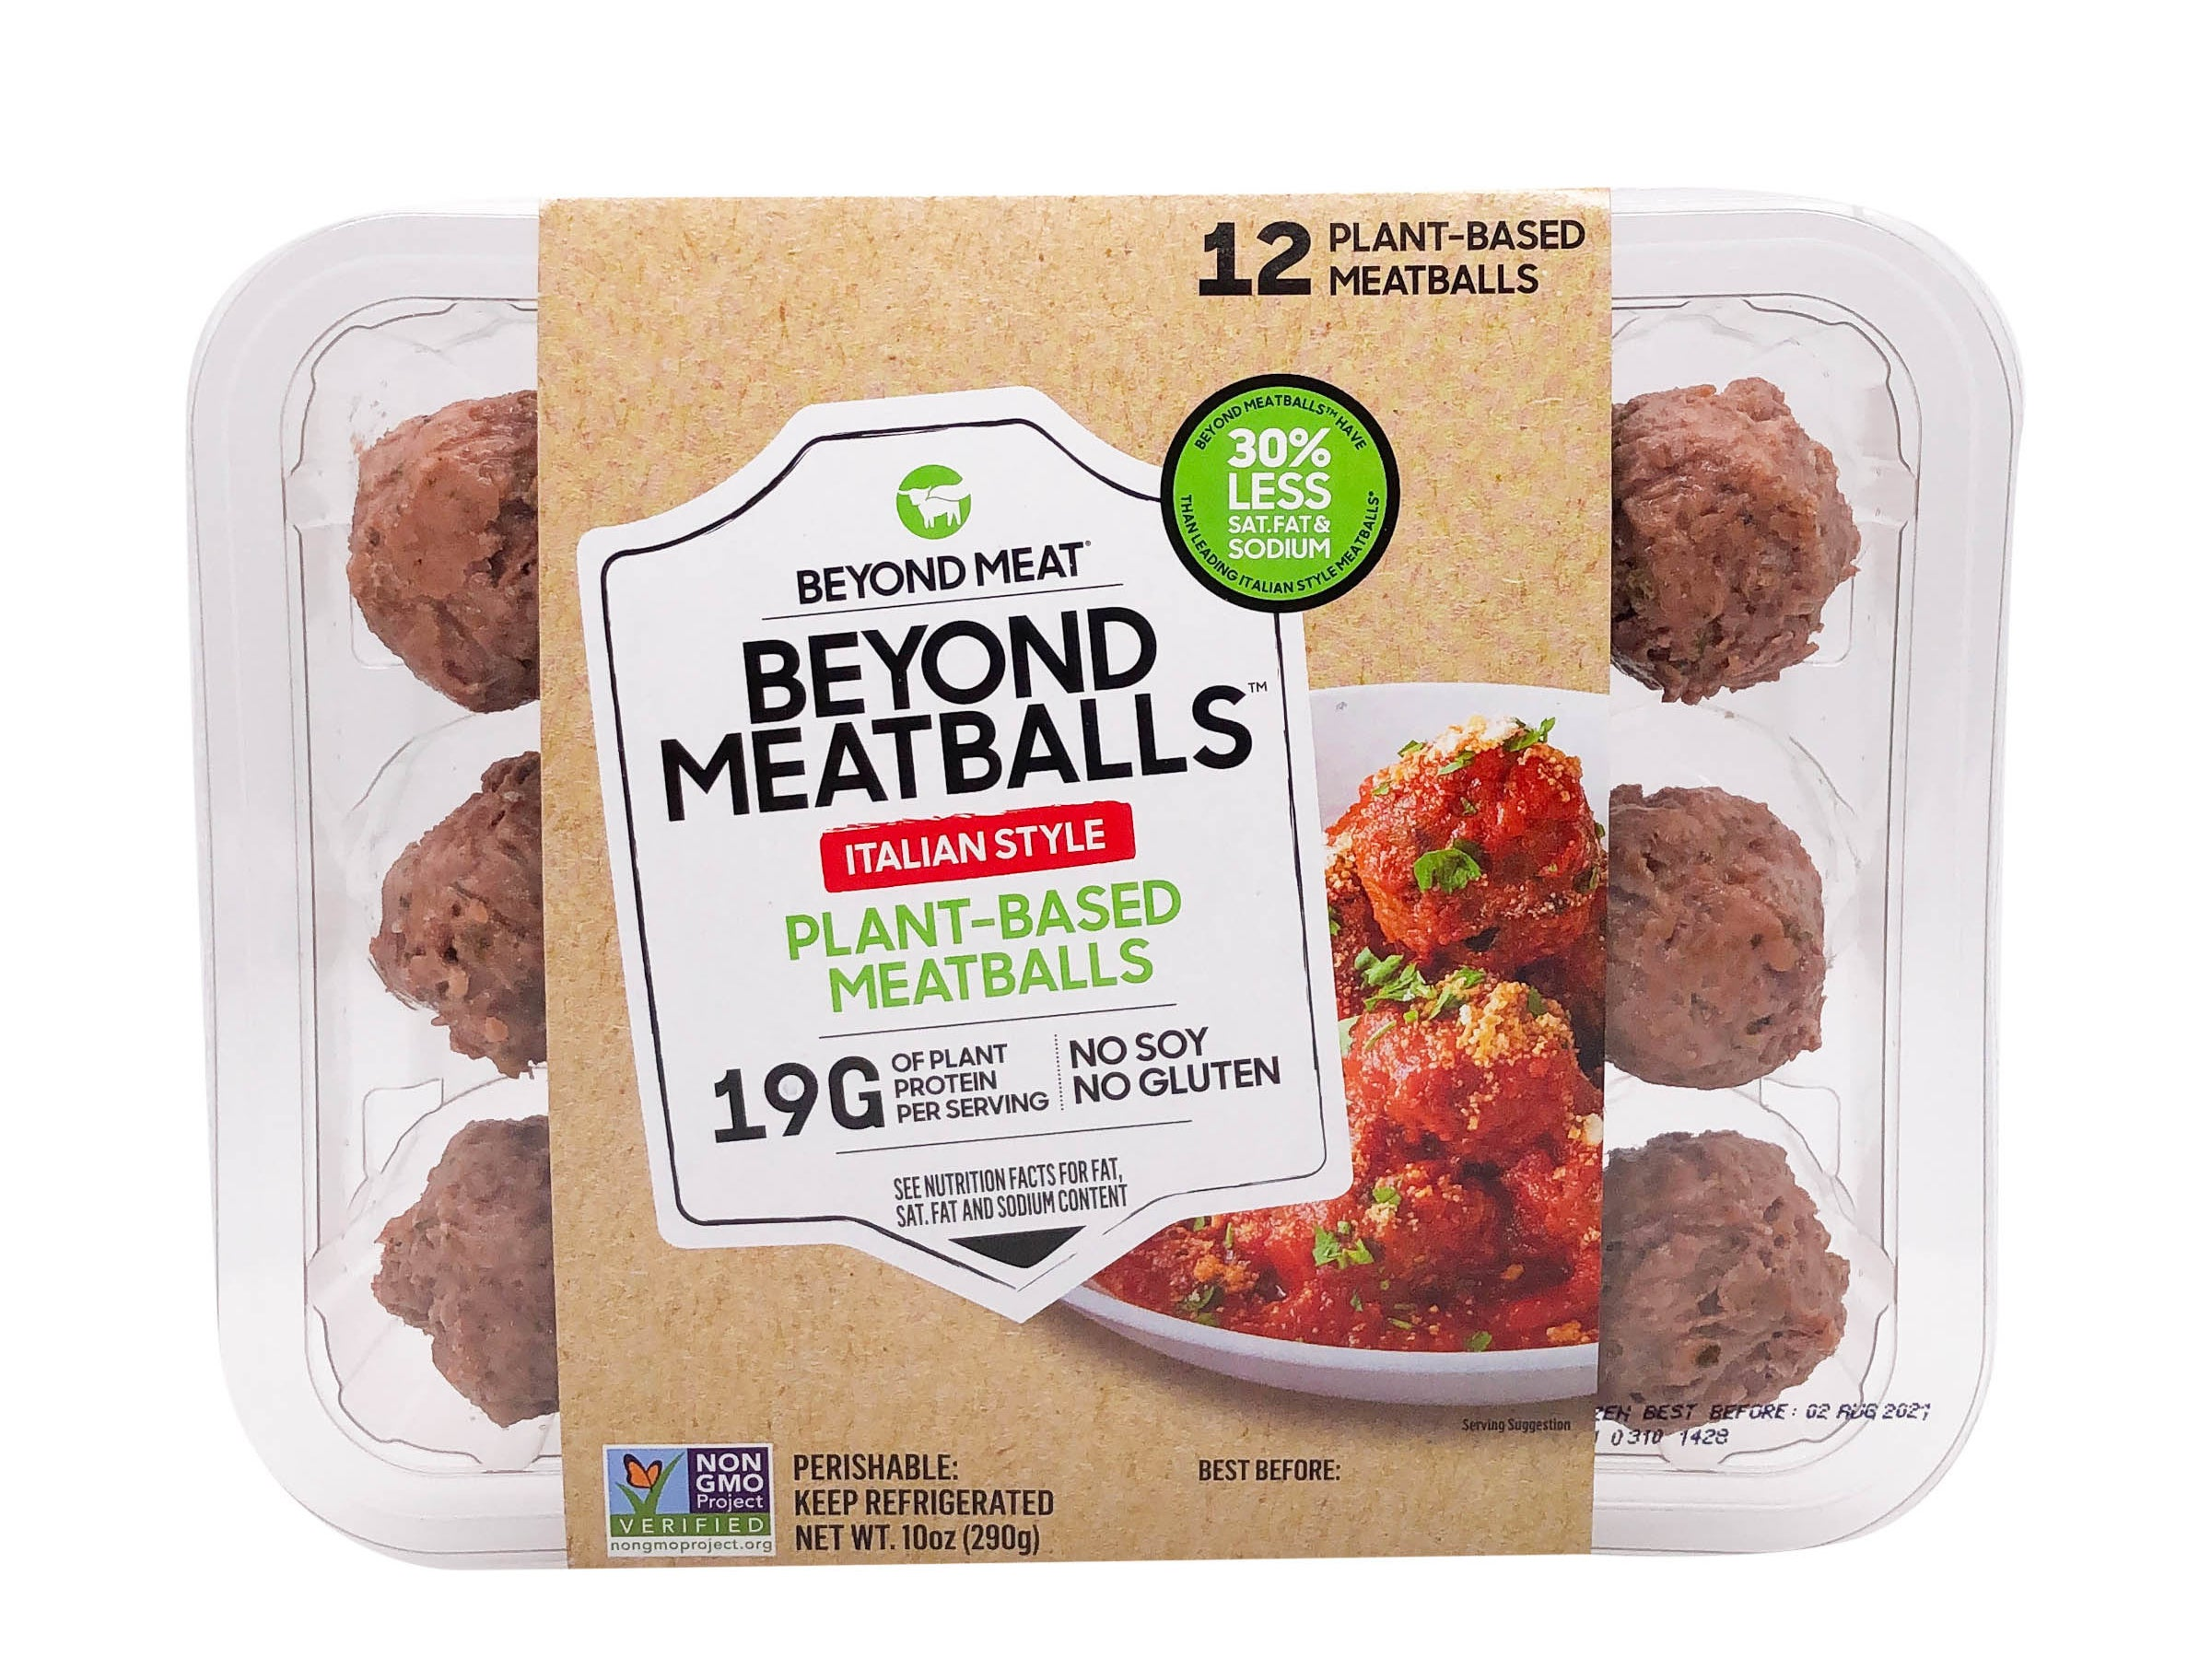 A package of 12 meatballs with a label in the middle